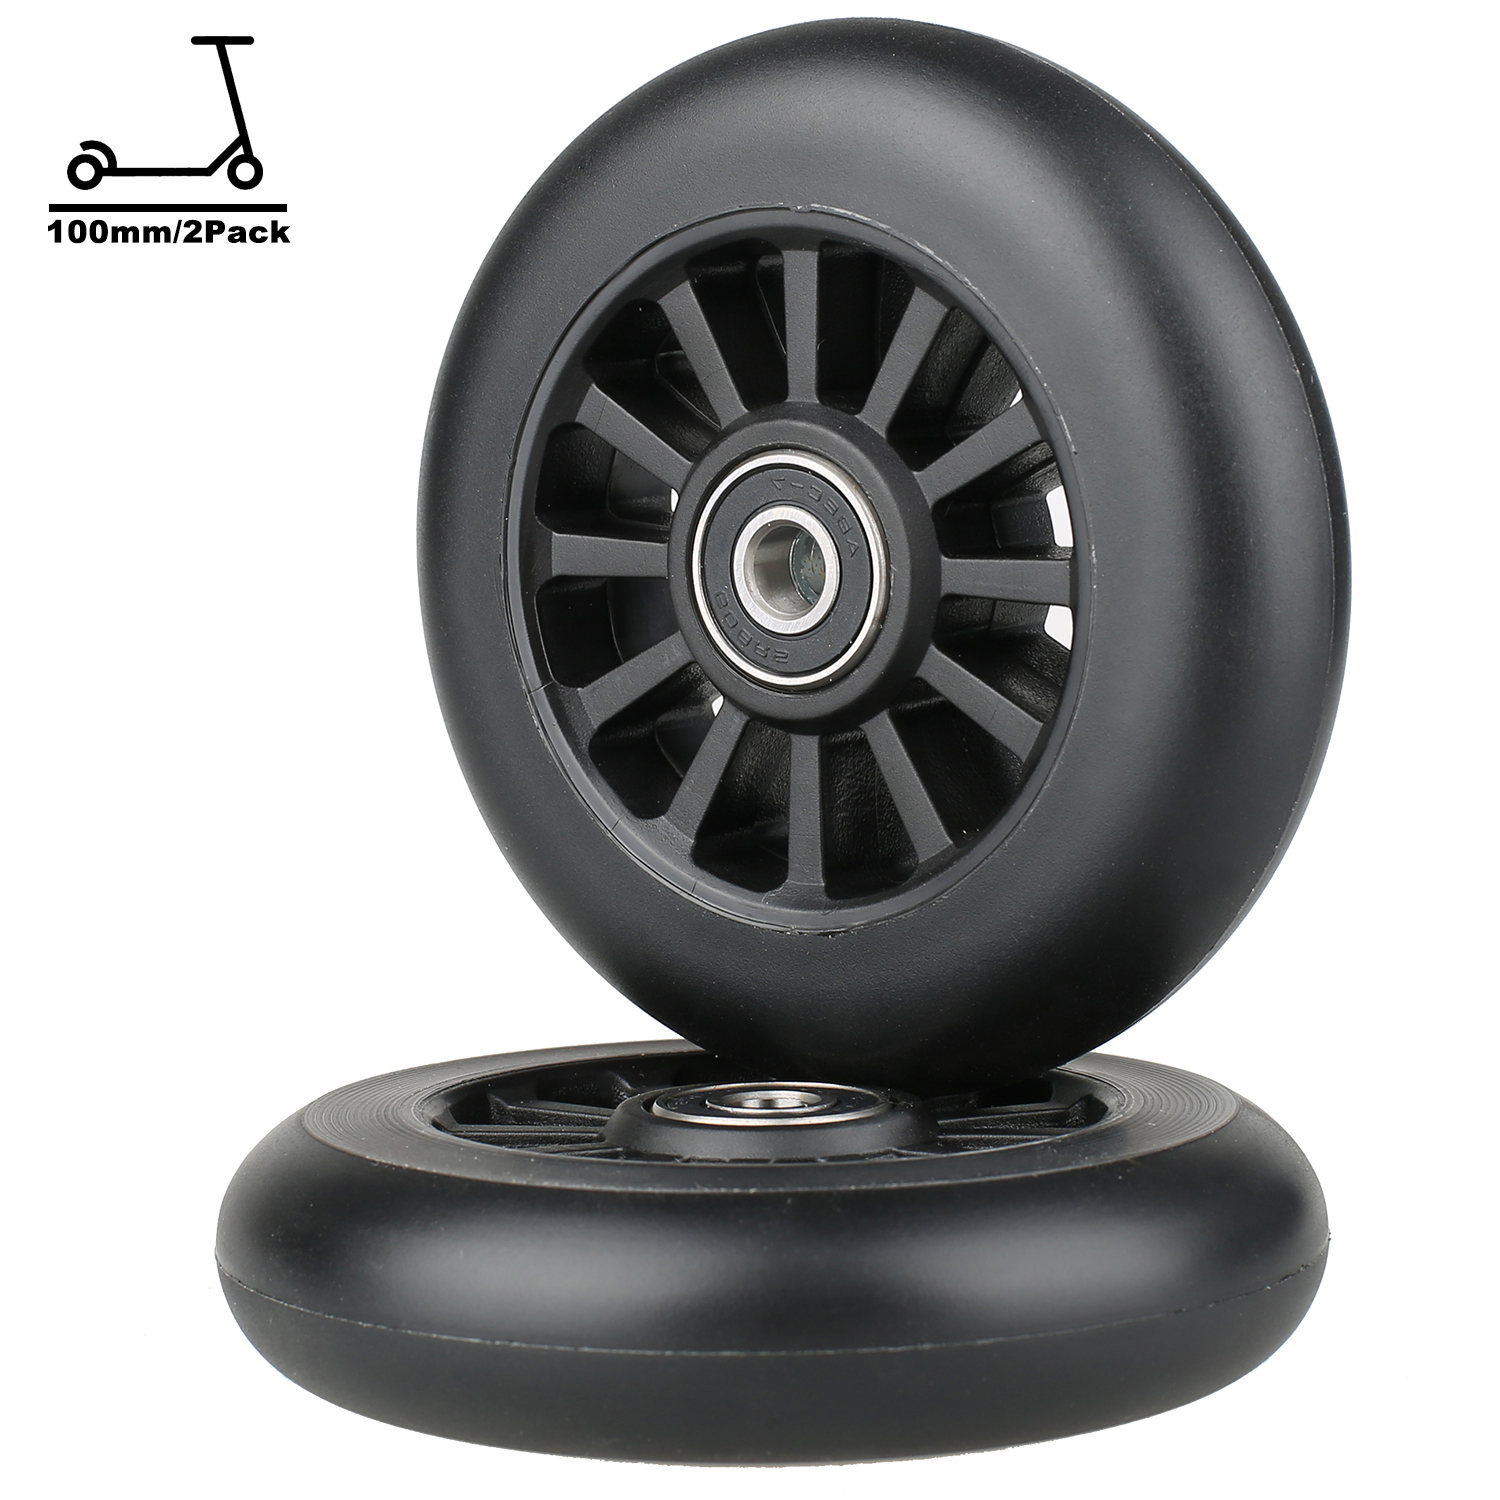 Scooter Wheels 100mm Pro Kick Scooter Wheels Replacement Smooth Bearing Installed  Plastic Core 100mm ABEC9 Scooter Wheels 2pcs